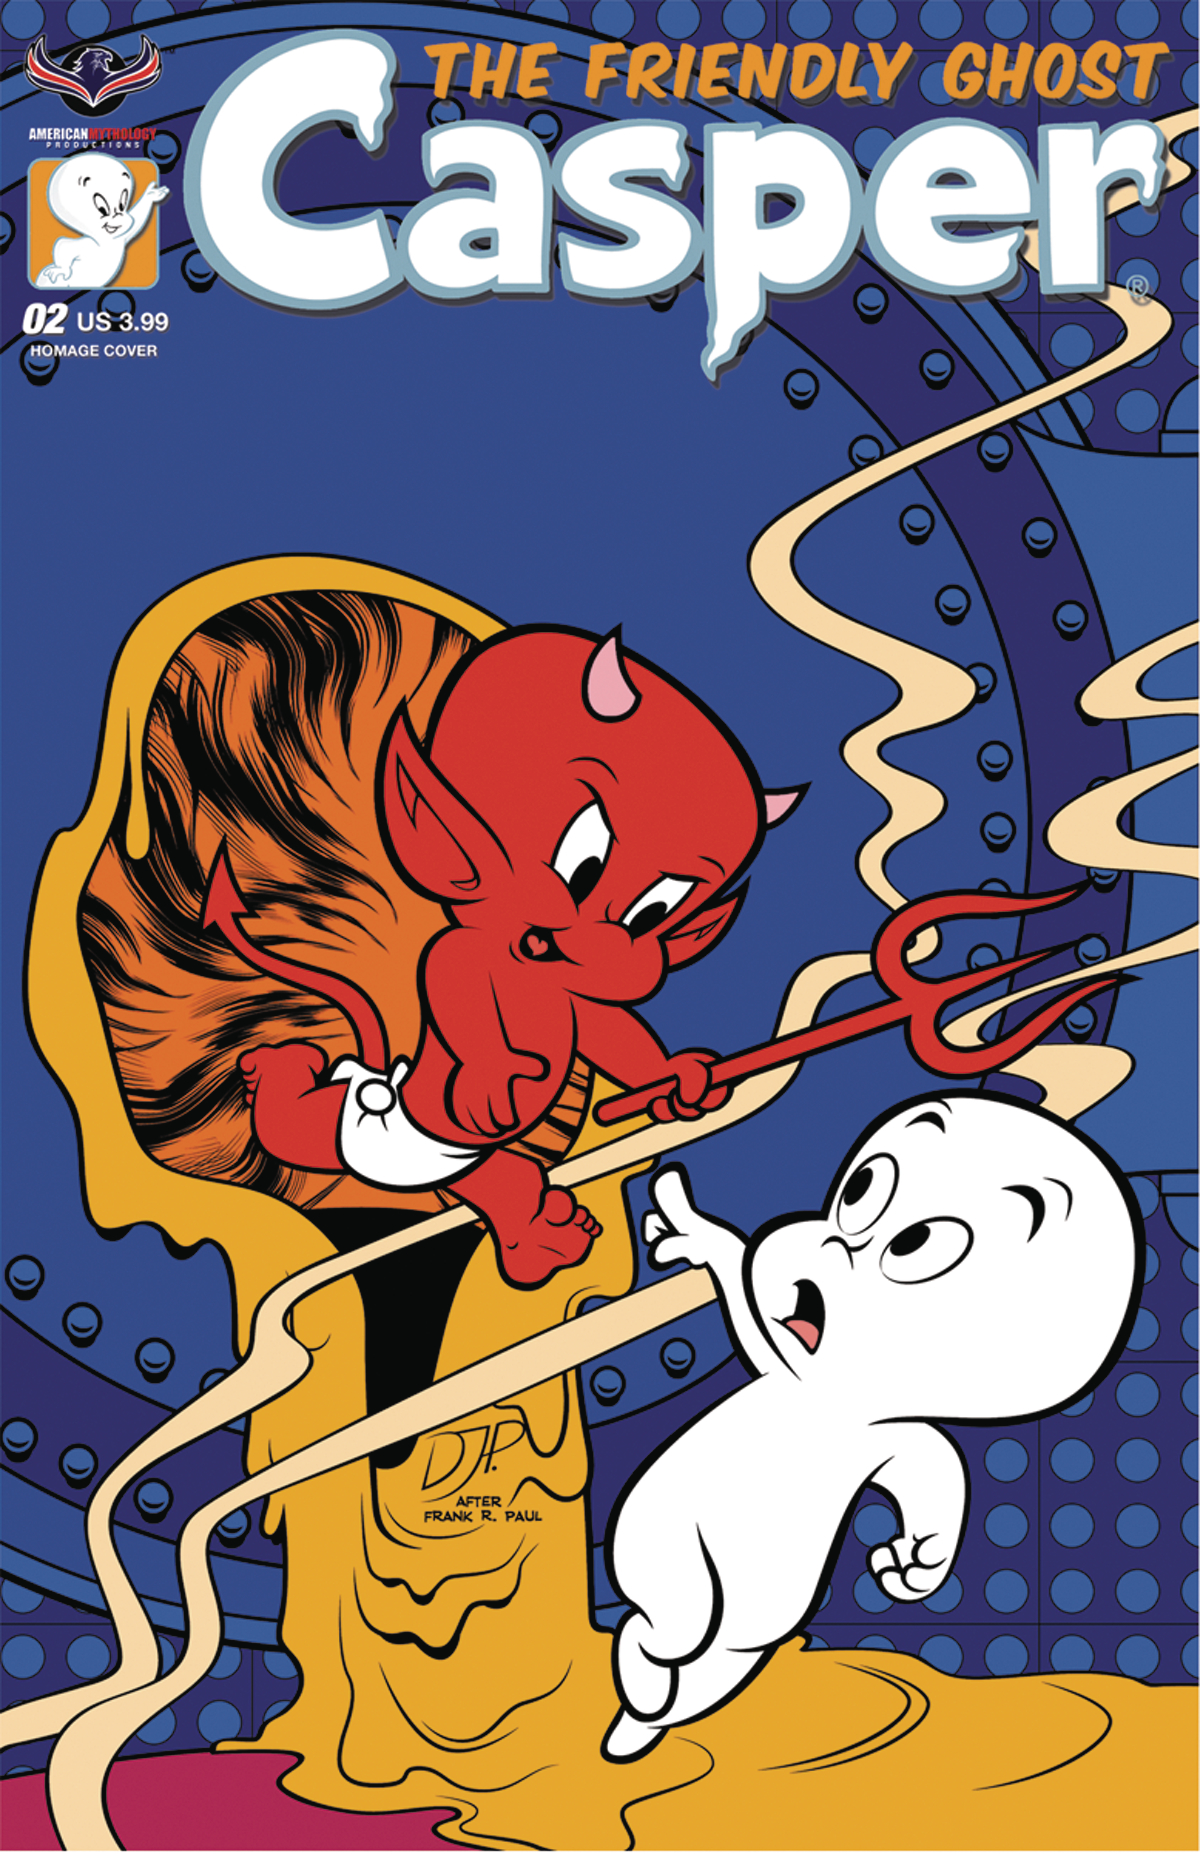 CASPER THE FRIENDLY GHOST #2 HOMAGE JOURDAN CVR